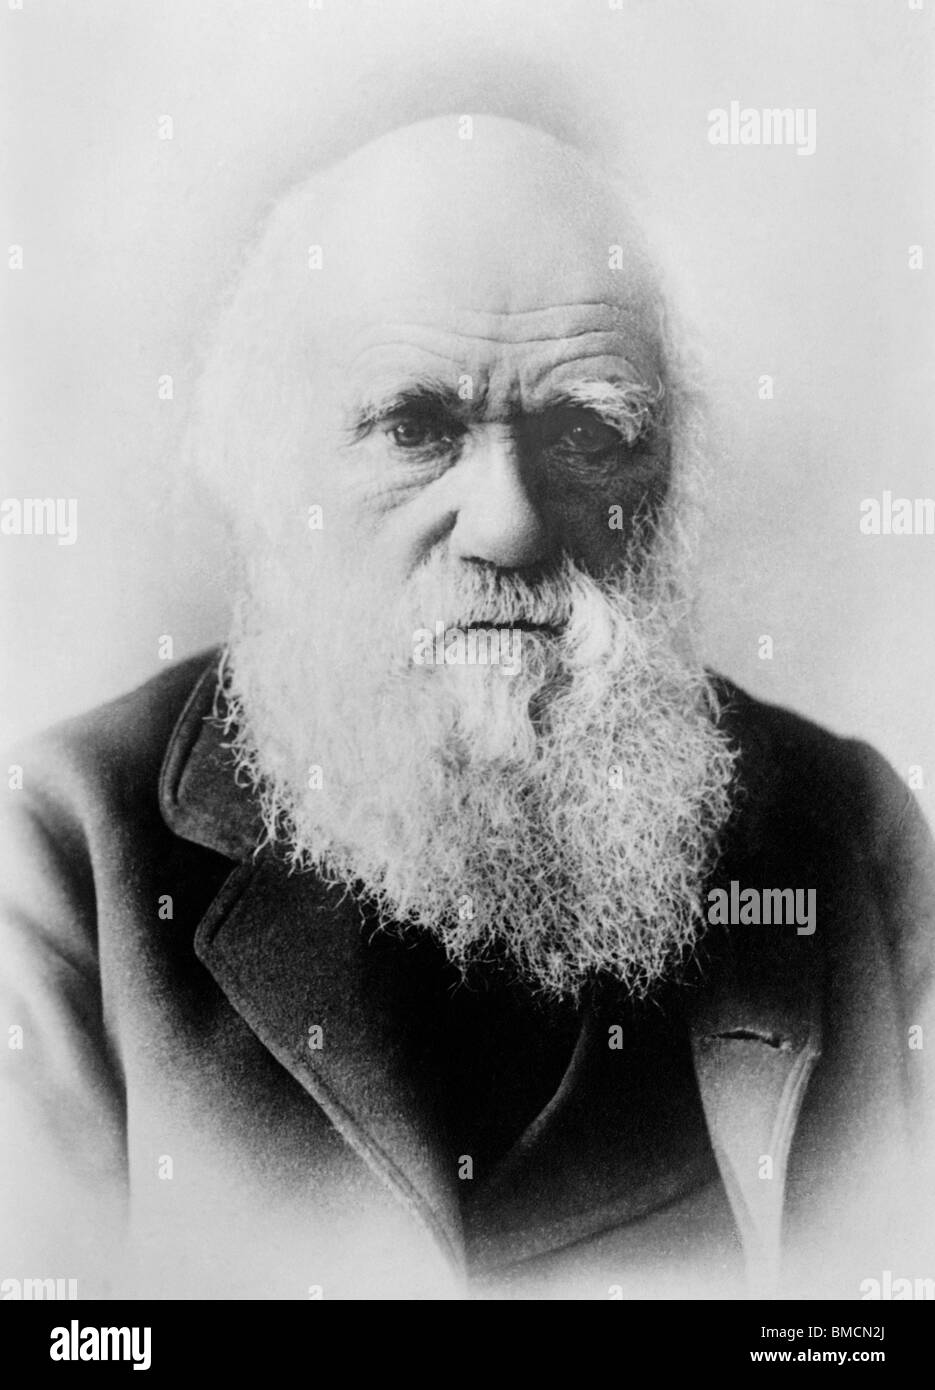 Vintage portrait photo circa 1870s of Charles Darwin (1809 - 1882) - the English naturalist famous for his theory - Stock Image